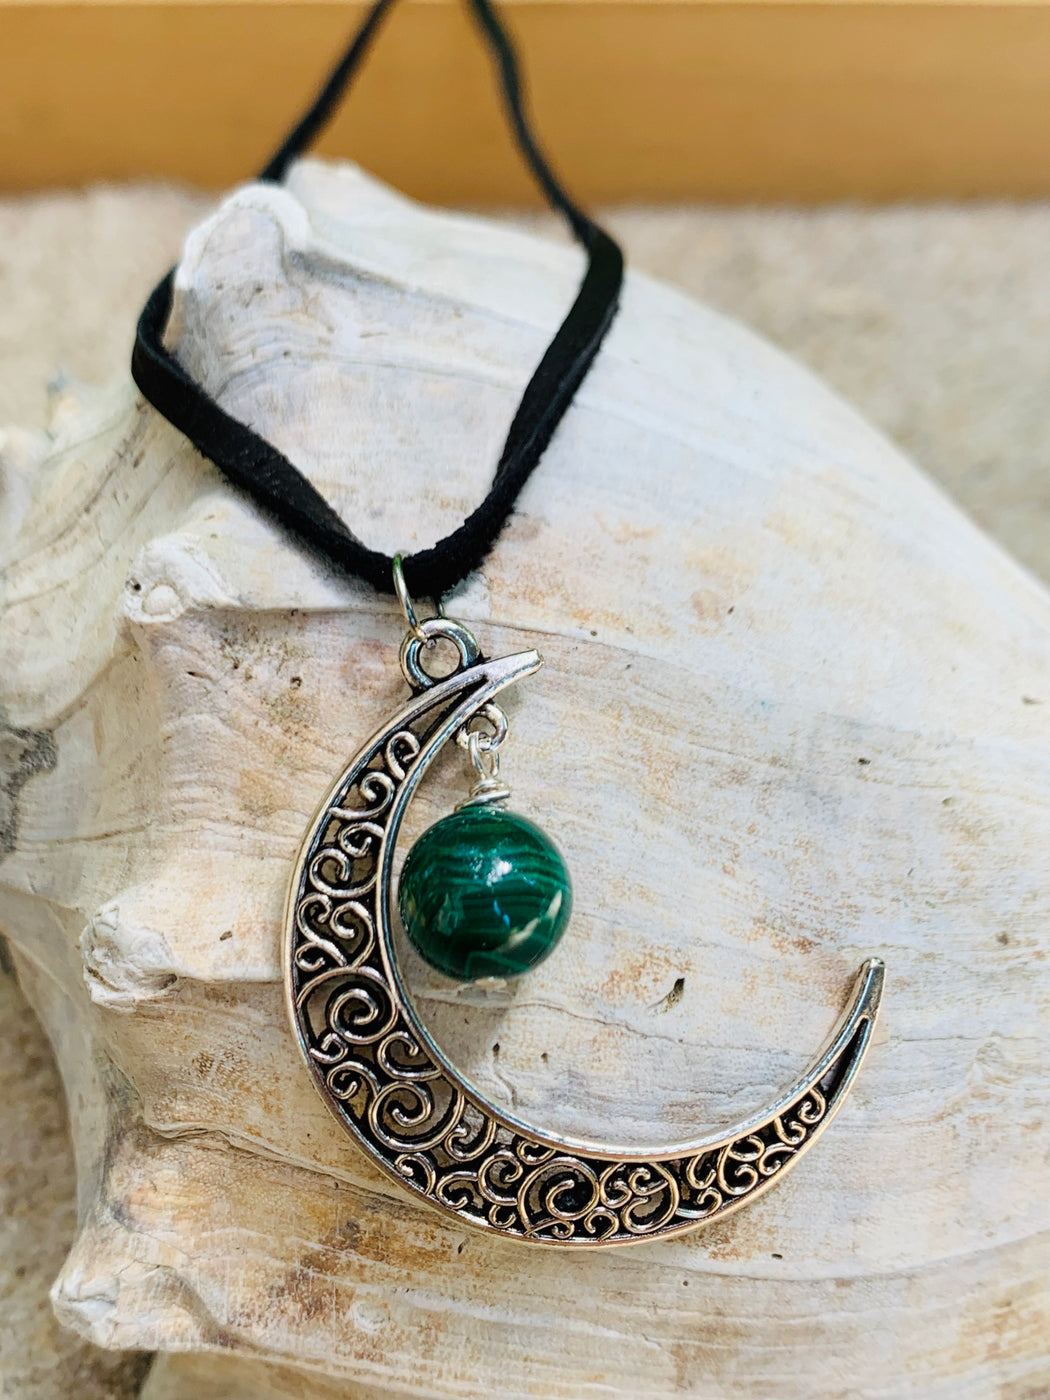 Boho Crescent Moon Pendant Necklace | Gemstone Moon Leather Necklace